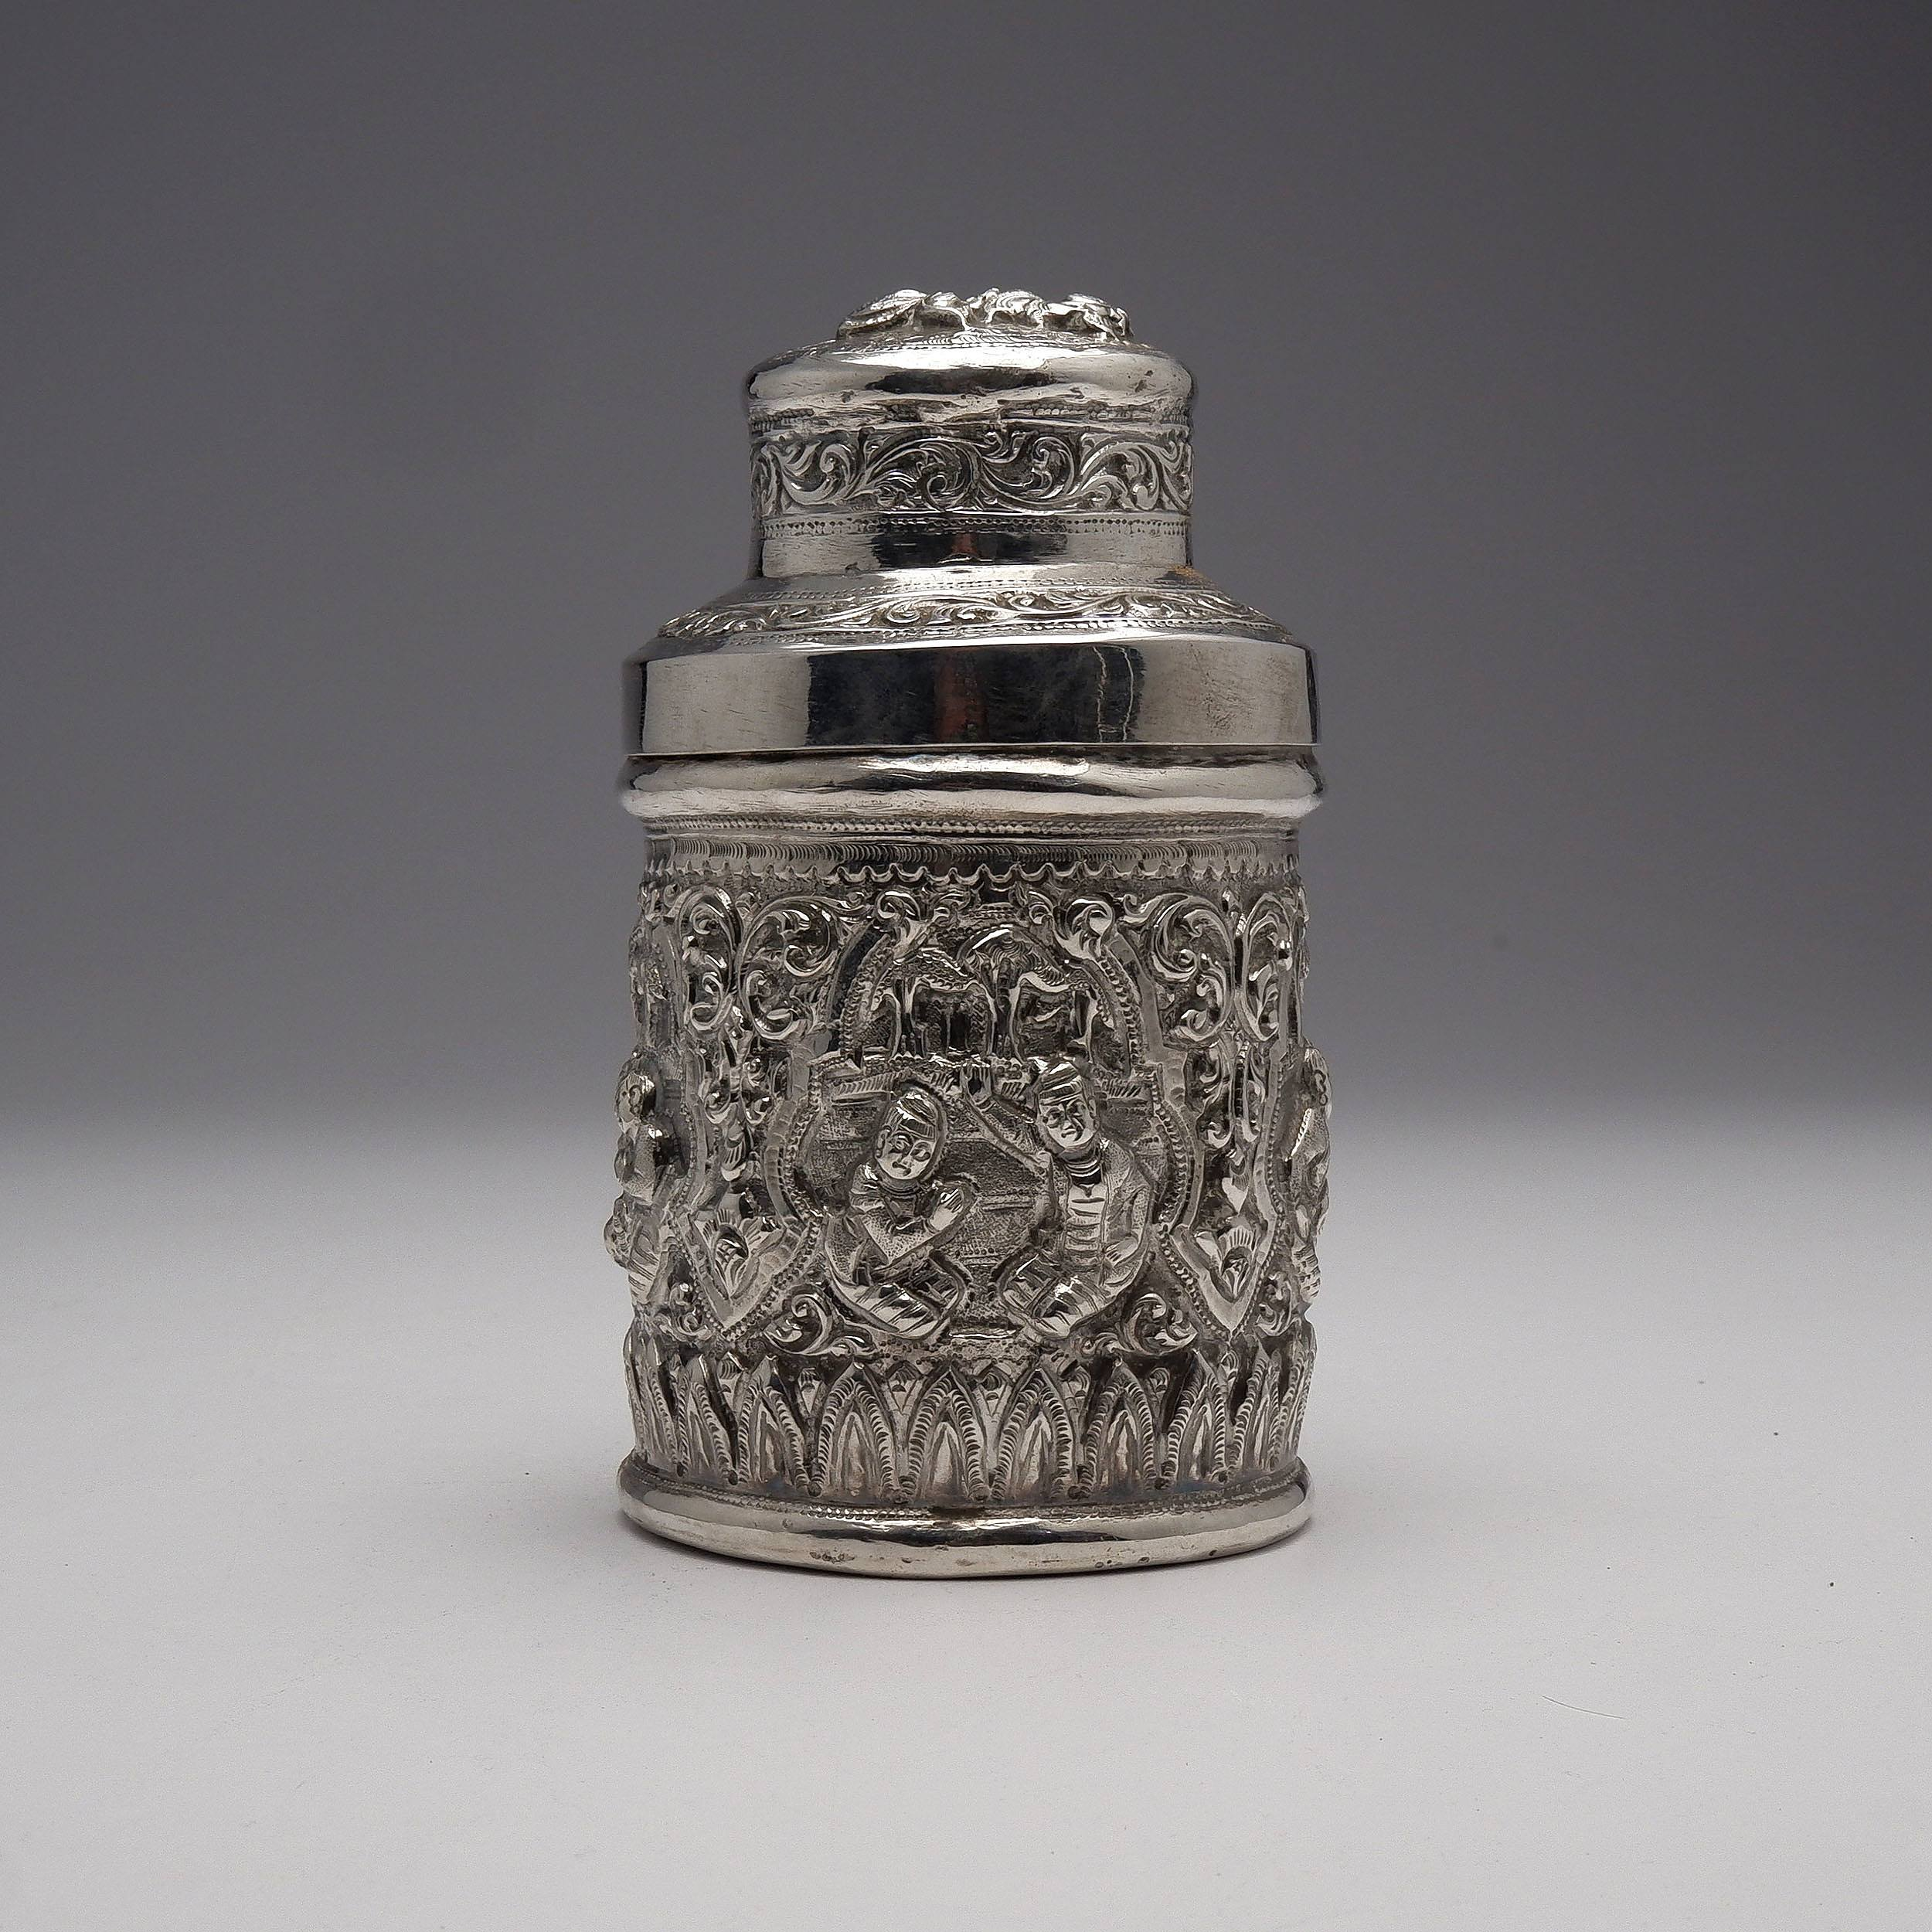 'Burmese Heavily Repousse Silver Container, 171g'